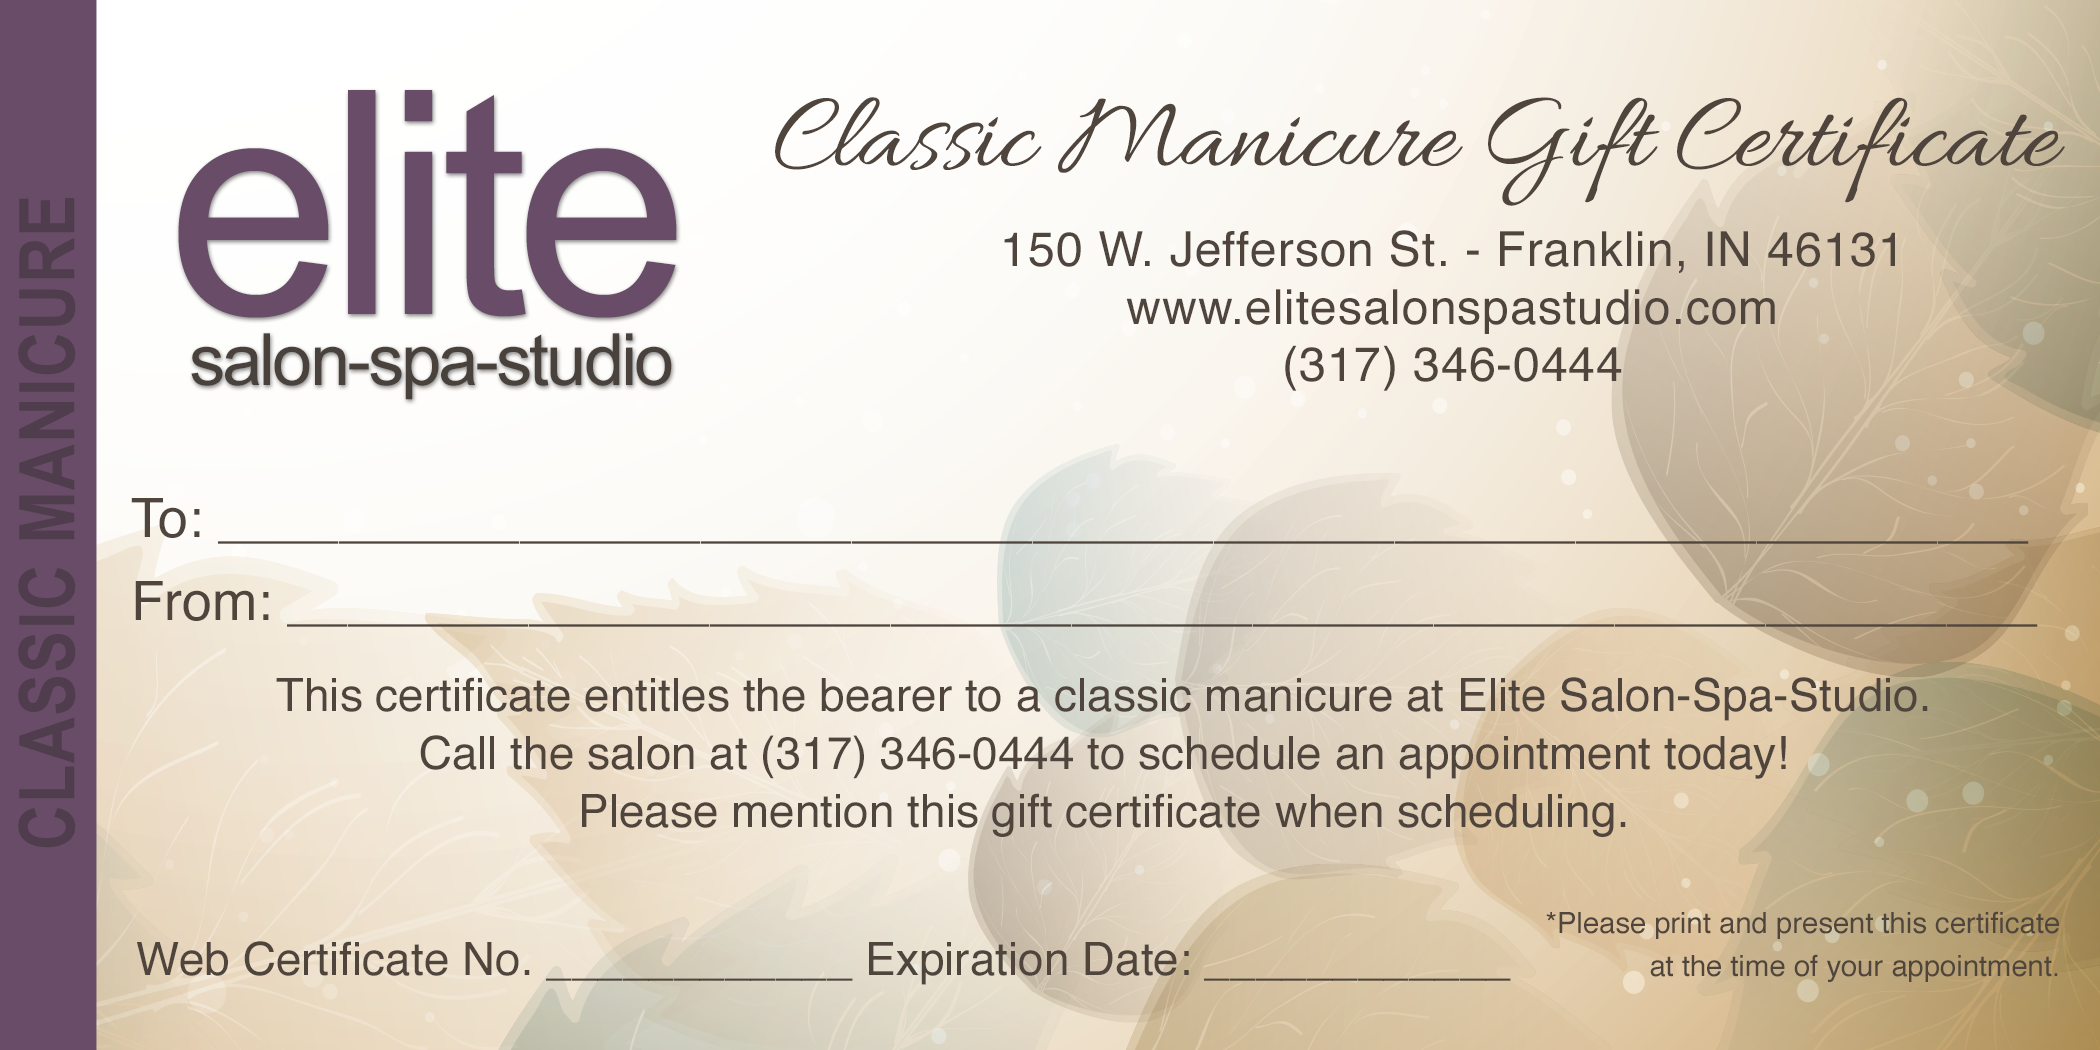 Manicure gift certificate gift ftempo for This entitles the bearer to template certificate